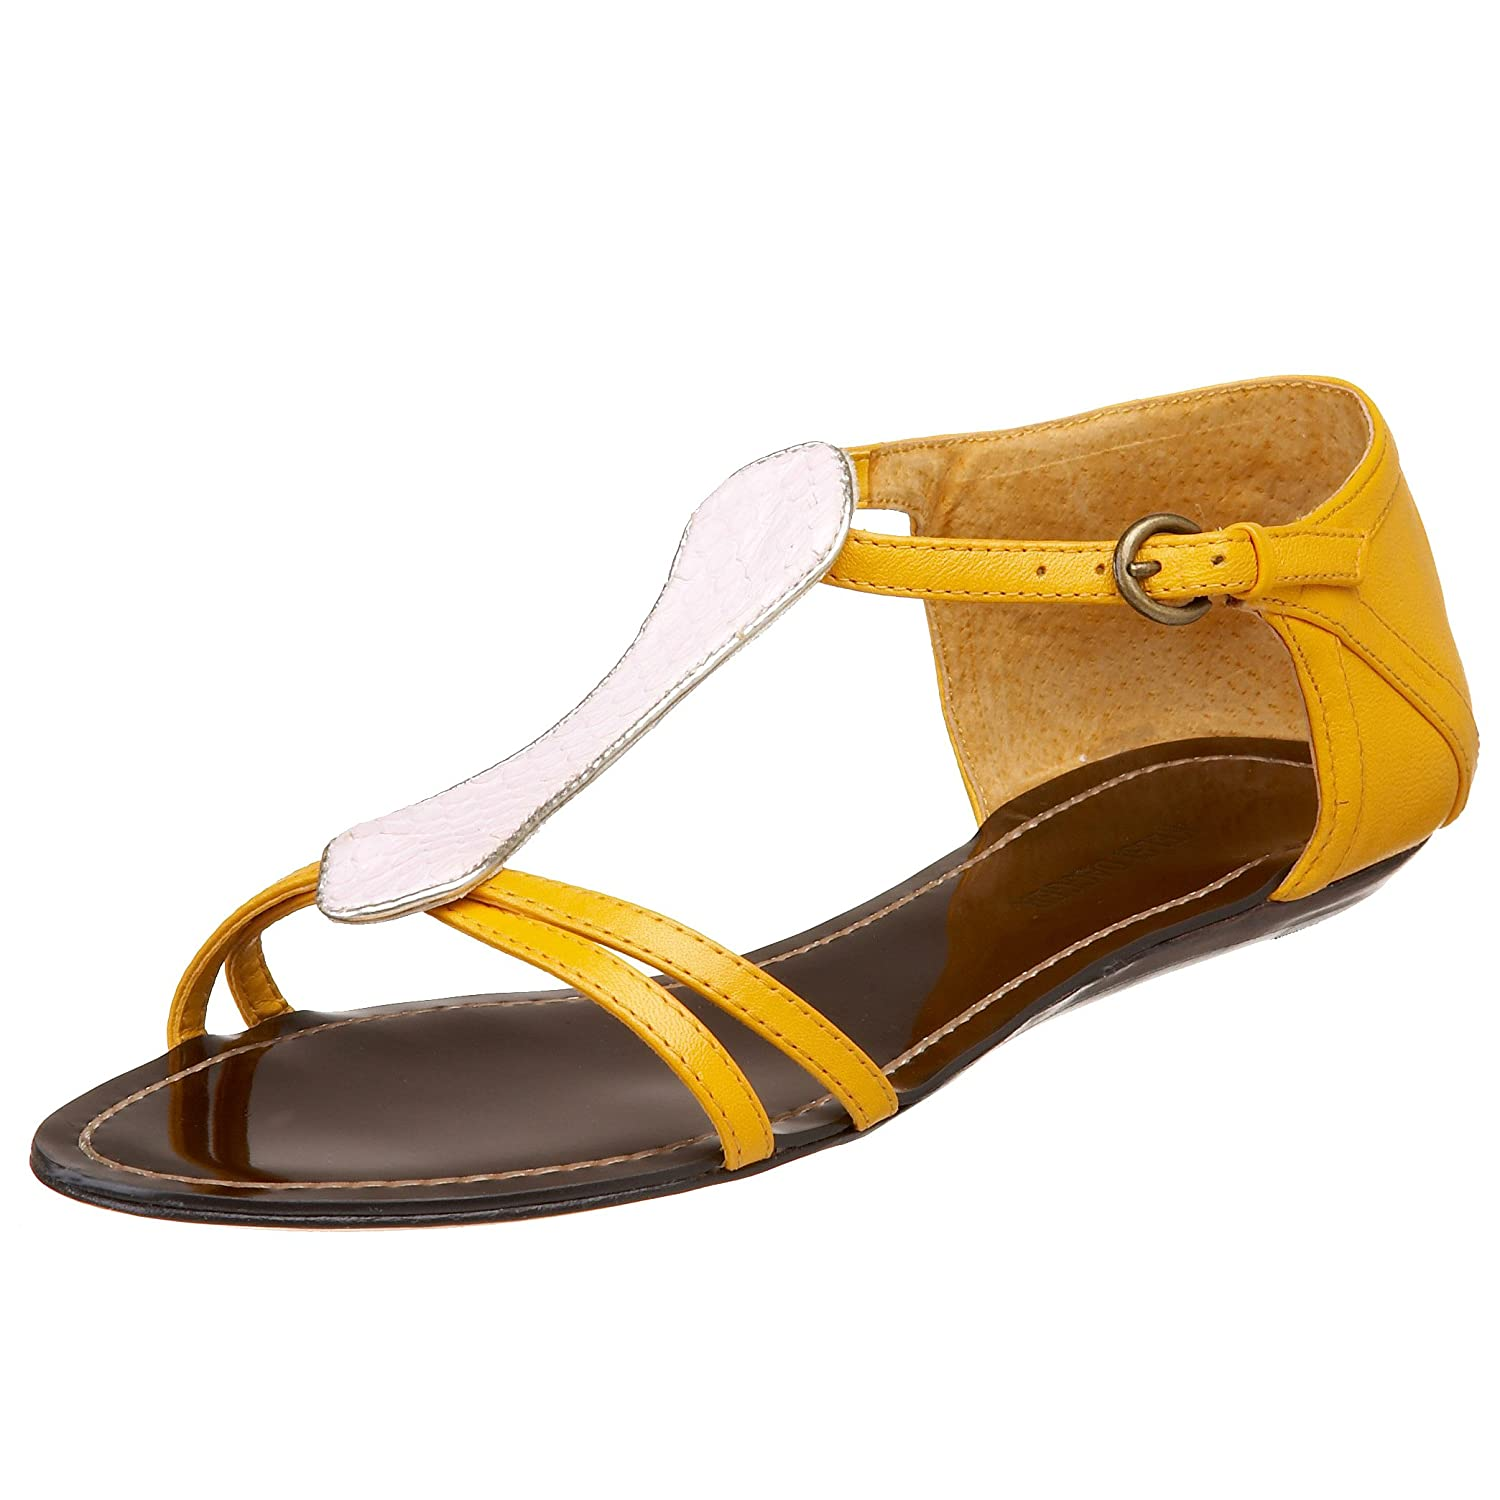 Kelsi Dagger Women's Cara T-Strap Sandal - Free Overnight Shipping & Return Shipping: Endless.com from endless.com